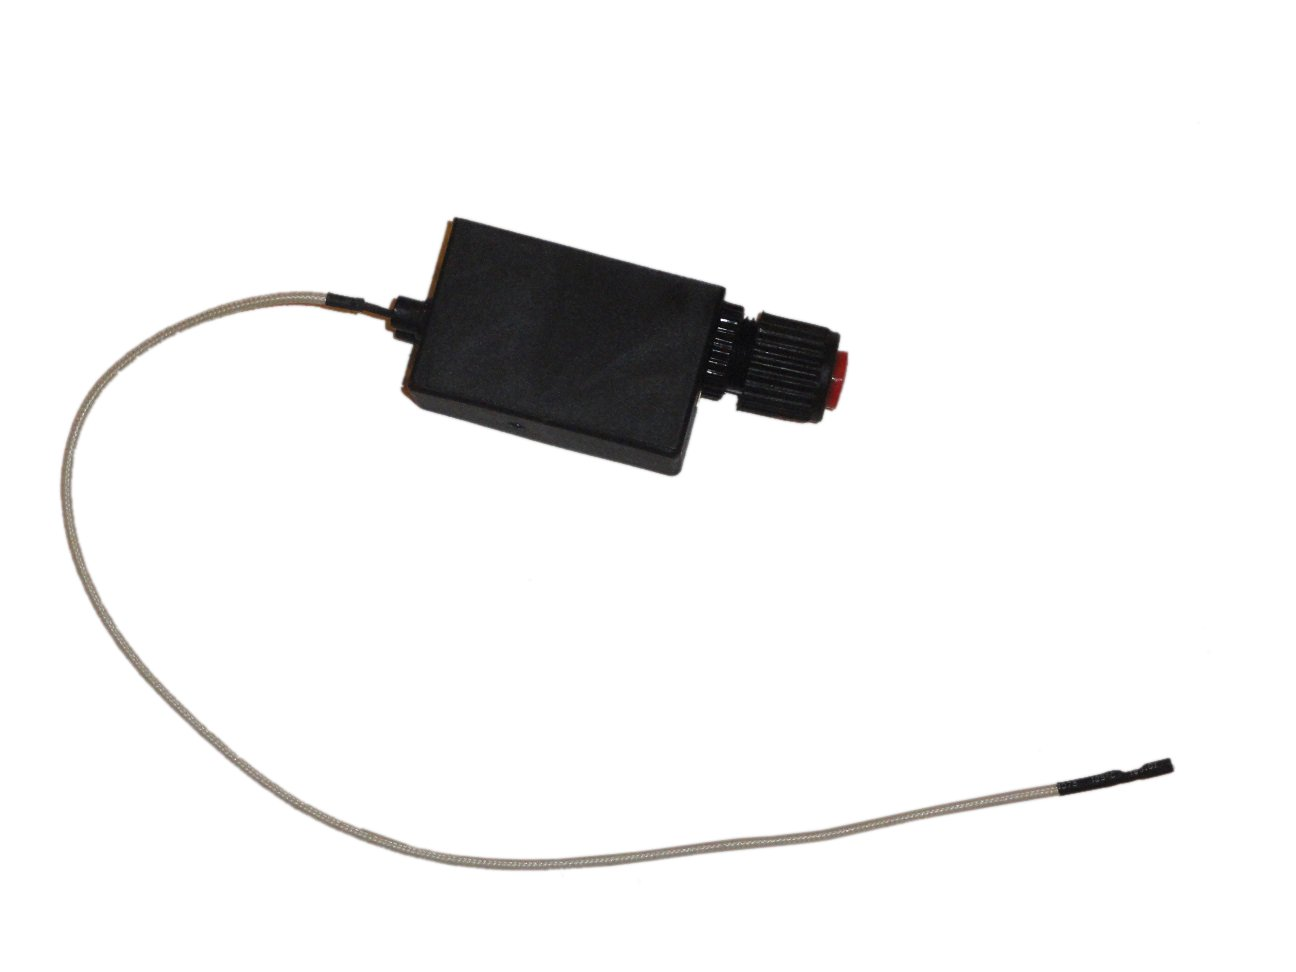 Electronic Piezo Igniter and wire for Uniflame Patio Heaters and Gas Firepits 233000, 233010, GWU9209SP, GWU512A, GAD860SP, GAD920SP, GAD1200B